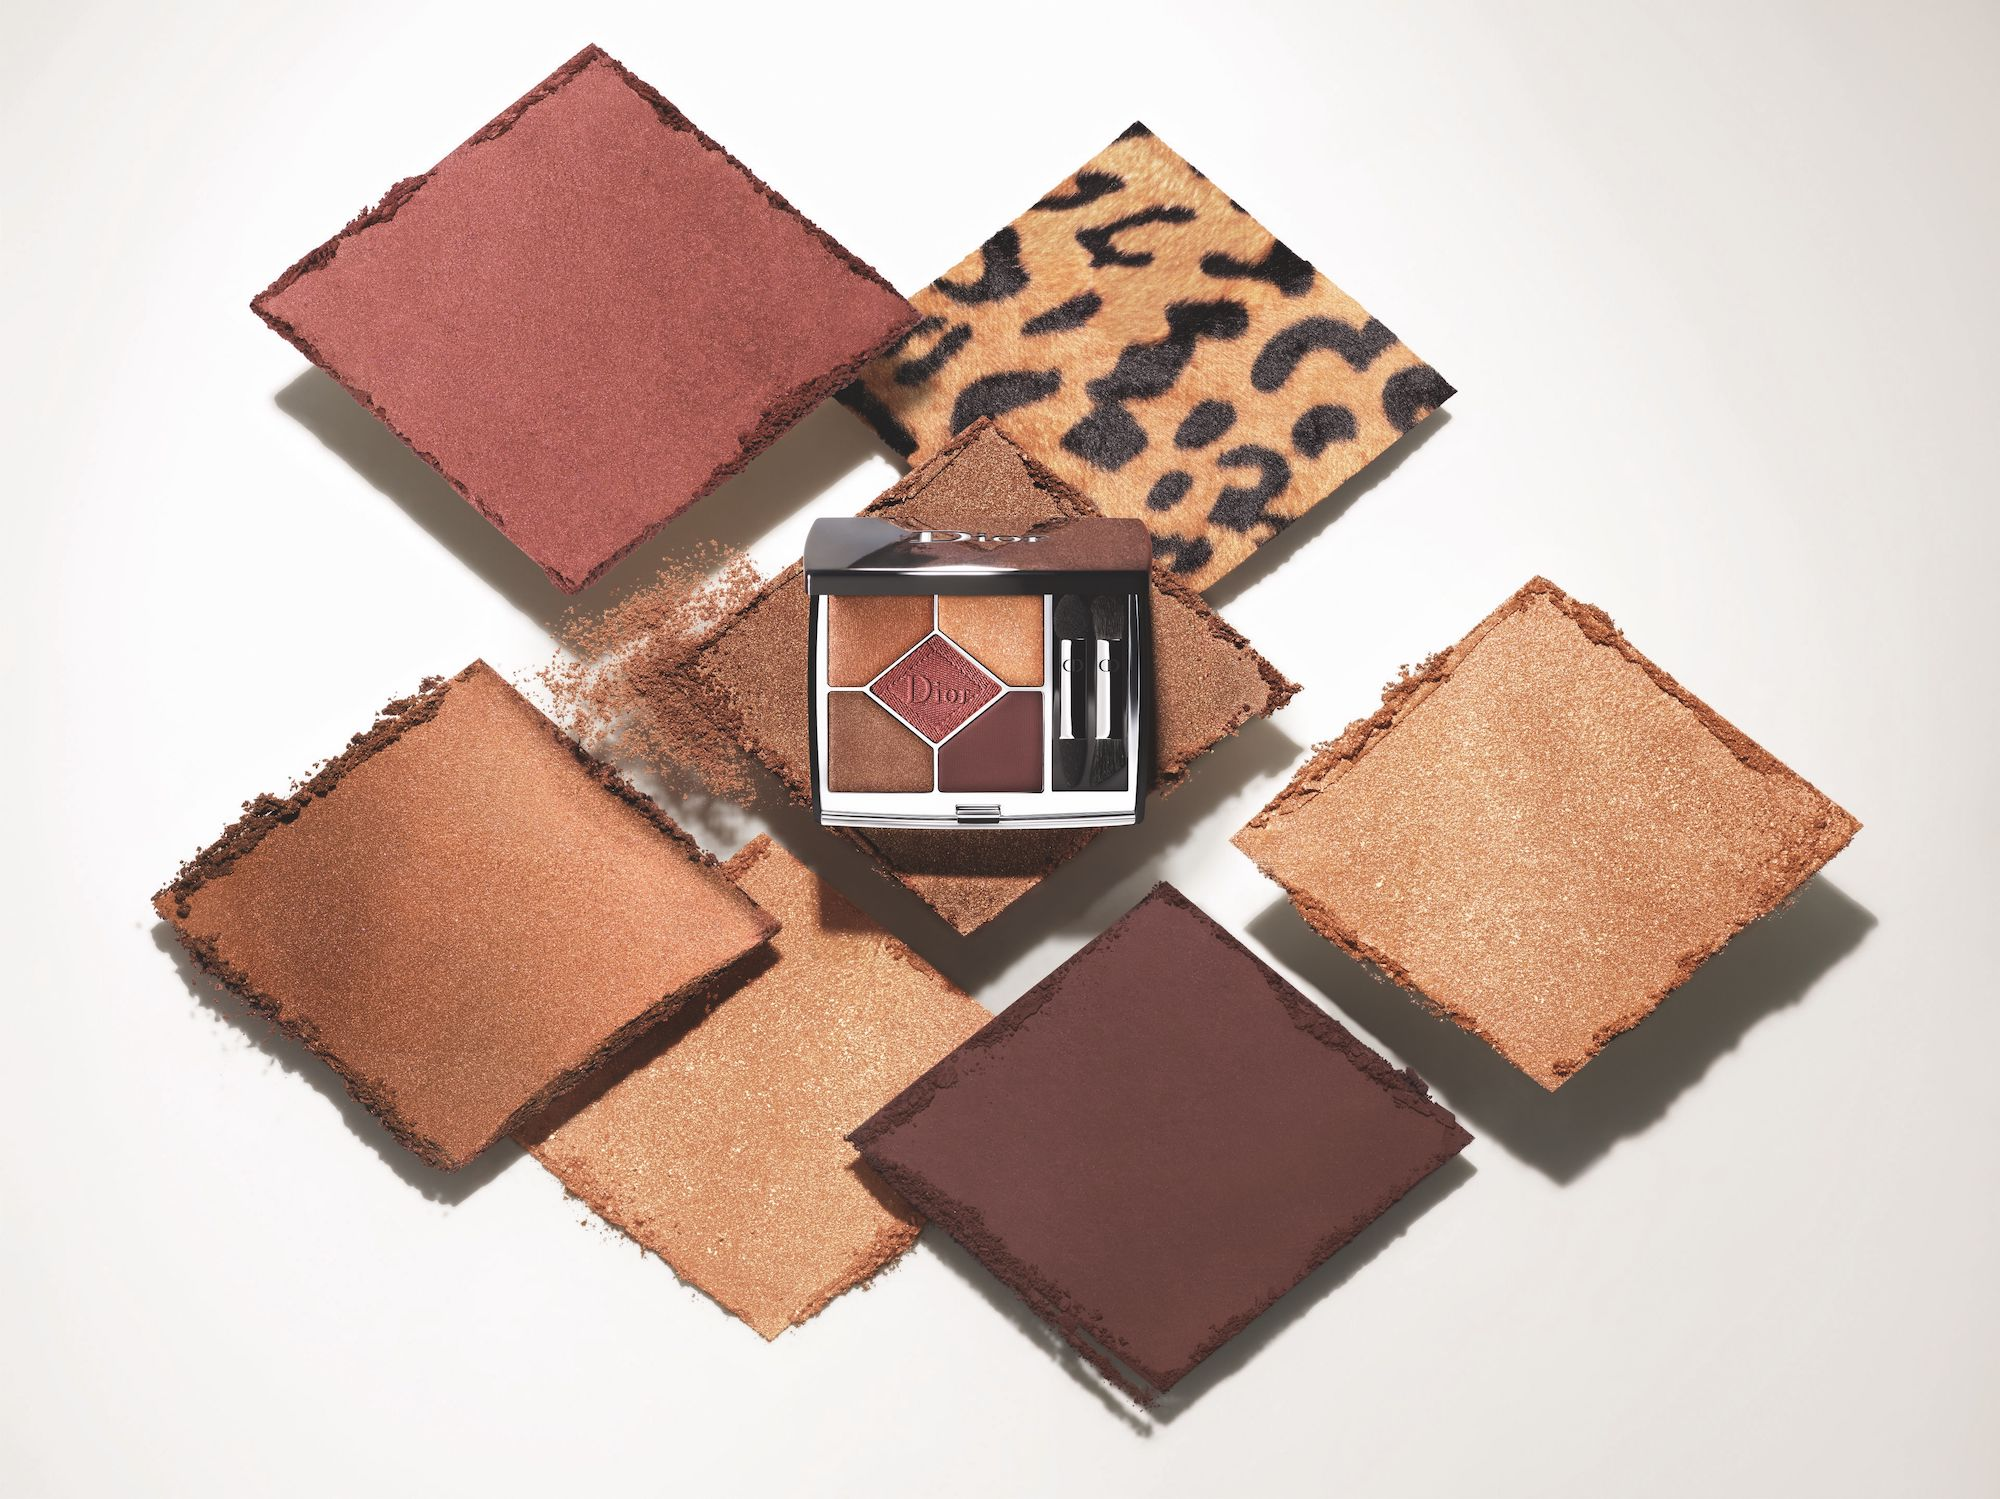 Diorshow Mitzah 5 Couleurs Eyeshadow Swatch